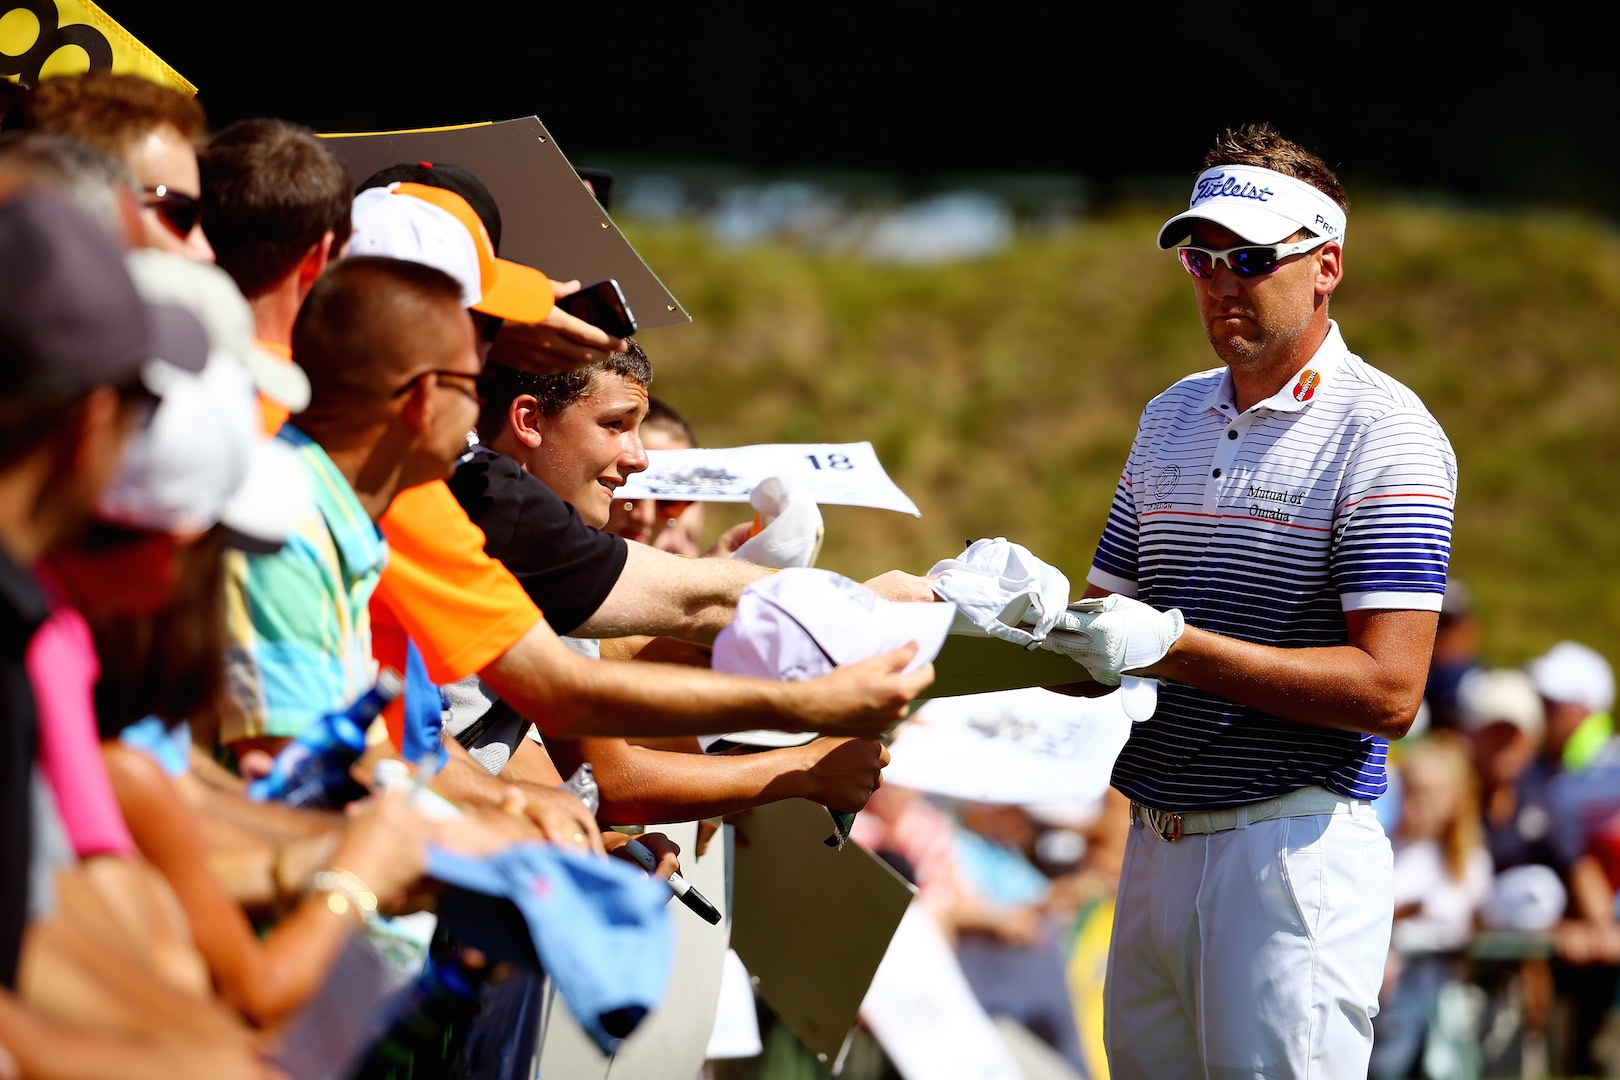 The FedExCup Connundrum!